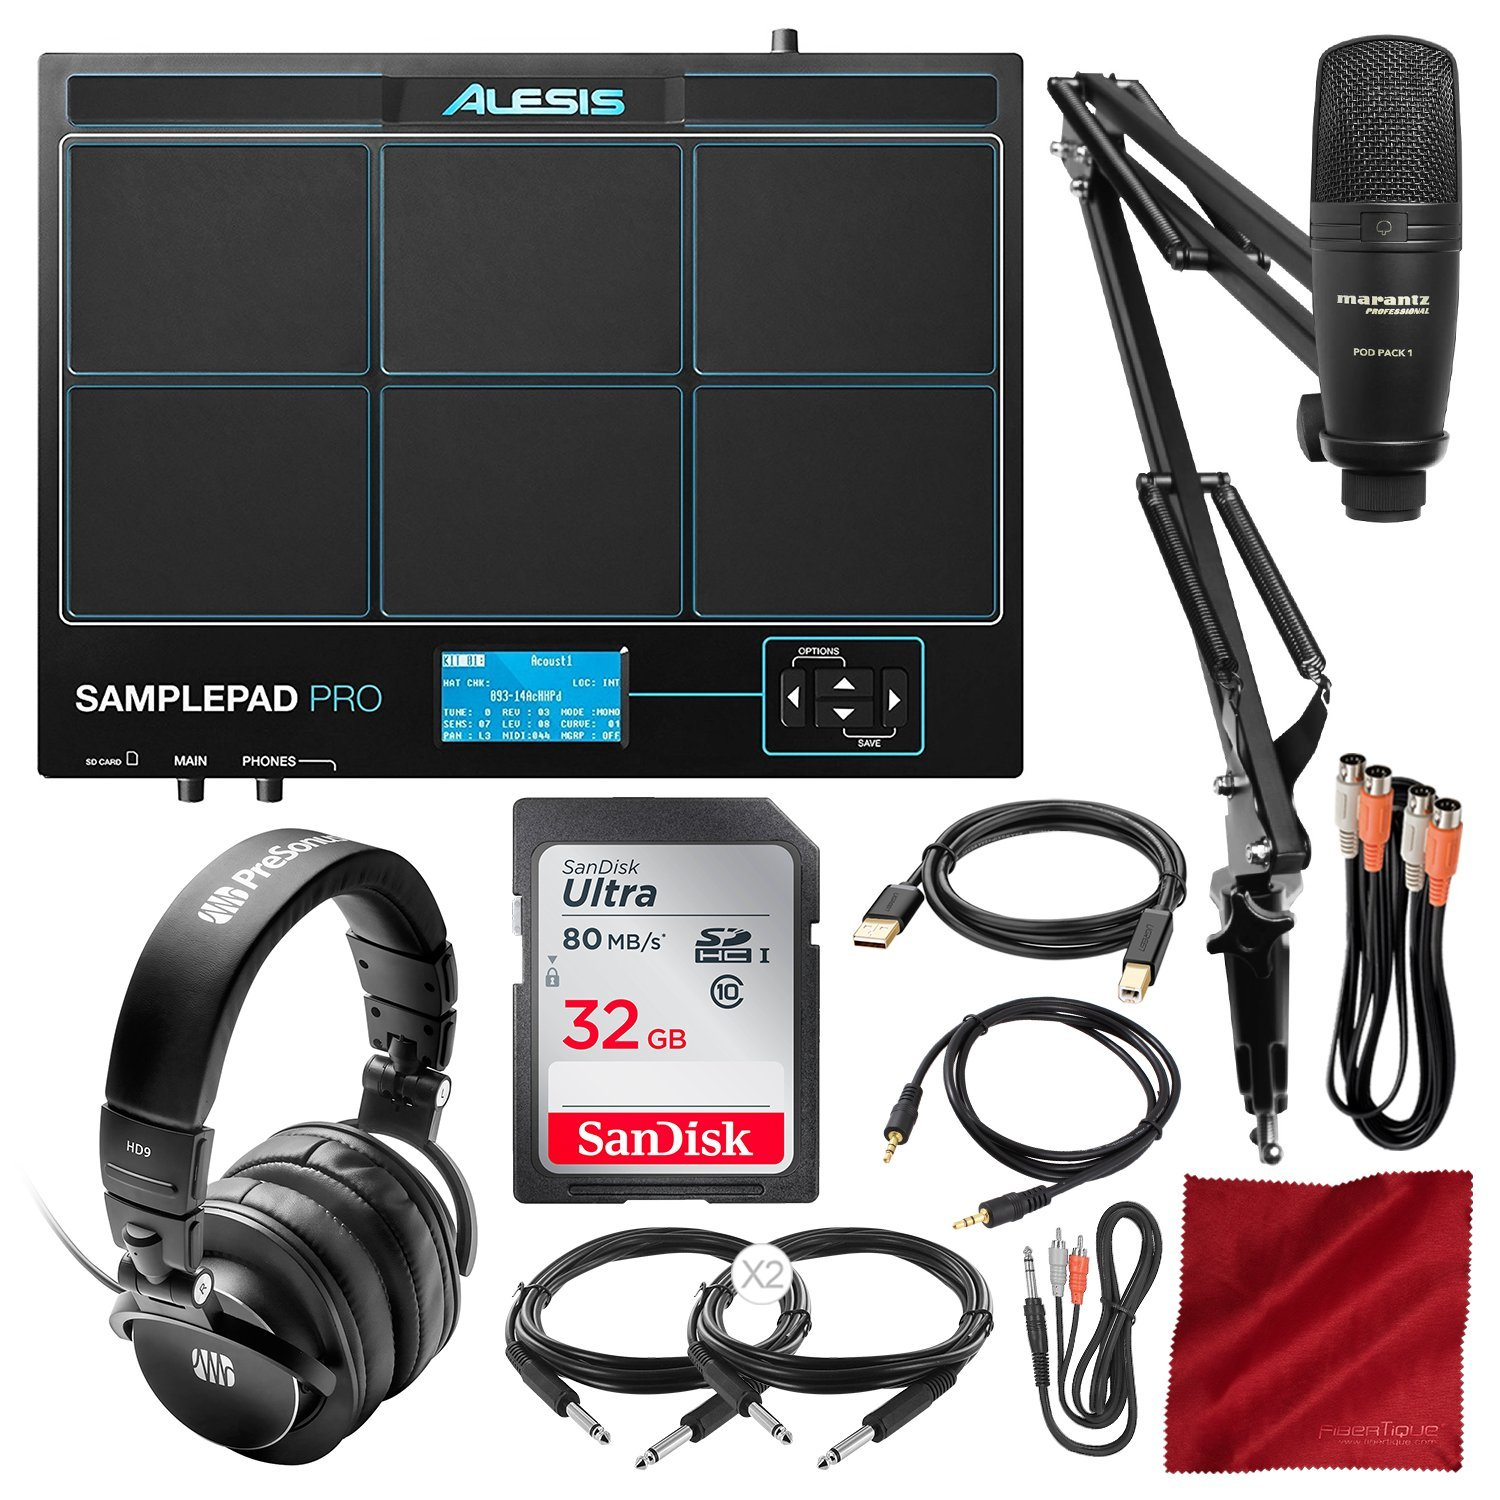 Alesis Sample Pad Pro 8-Pad Percussion and Triggering Instrument with Marantz Pod Pack 1 Broadcast Arm USB Mic Kit, PreSonus Headphones, and Assorted Cables Bundle